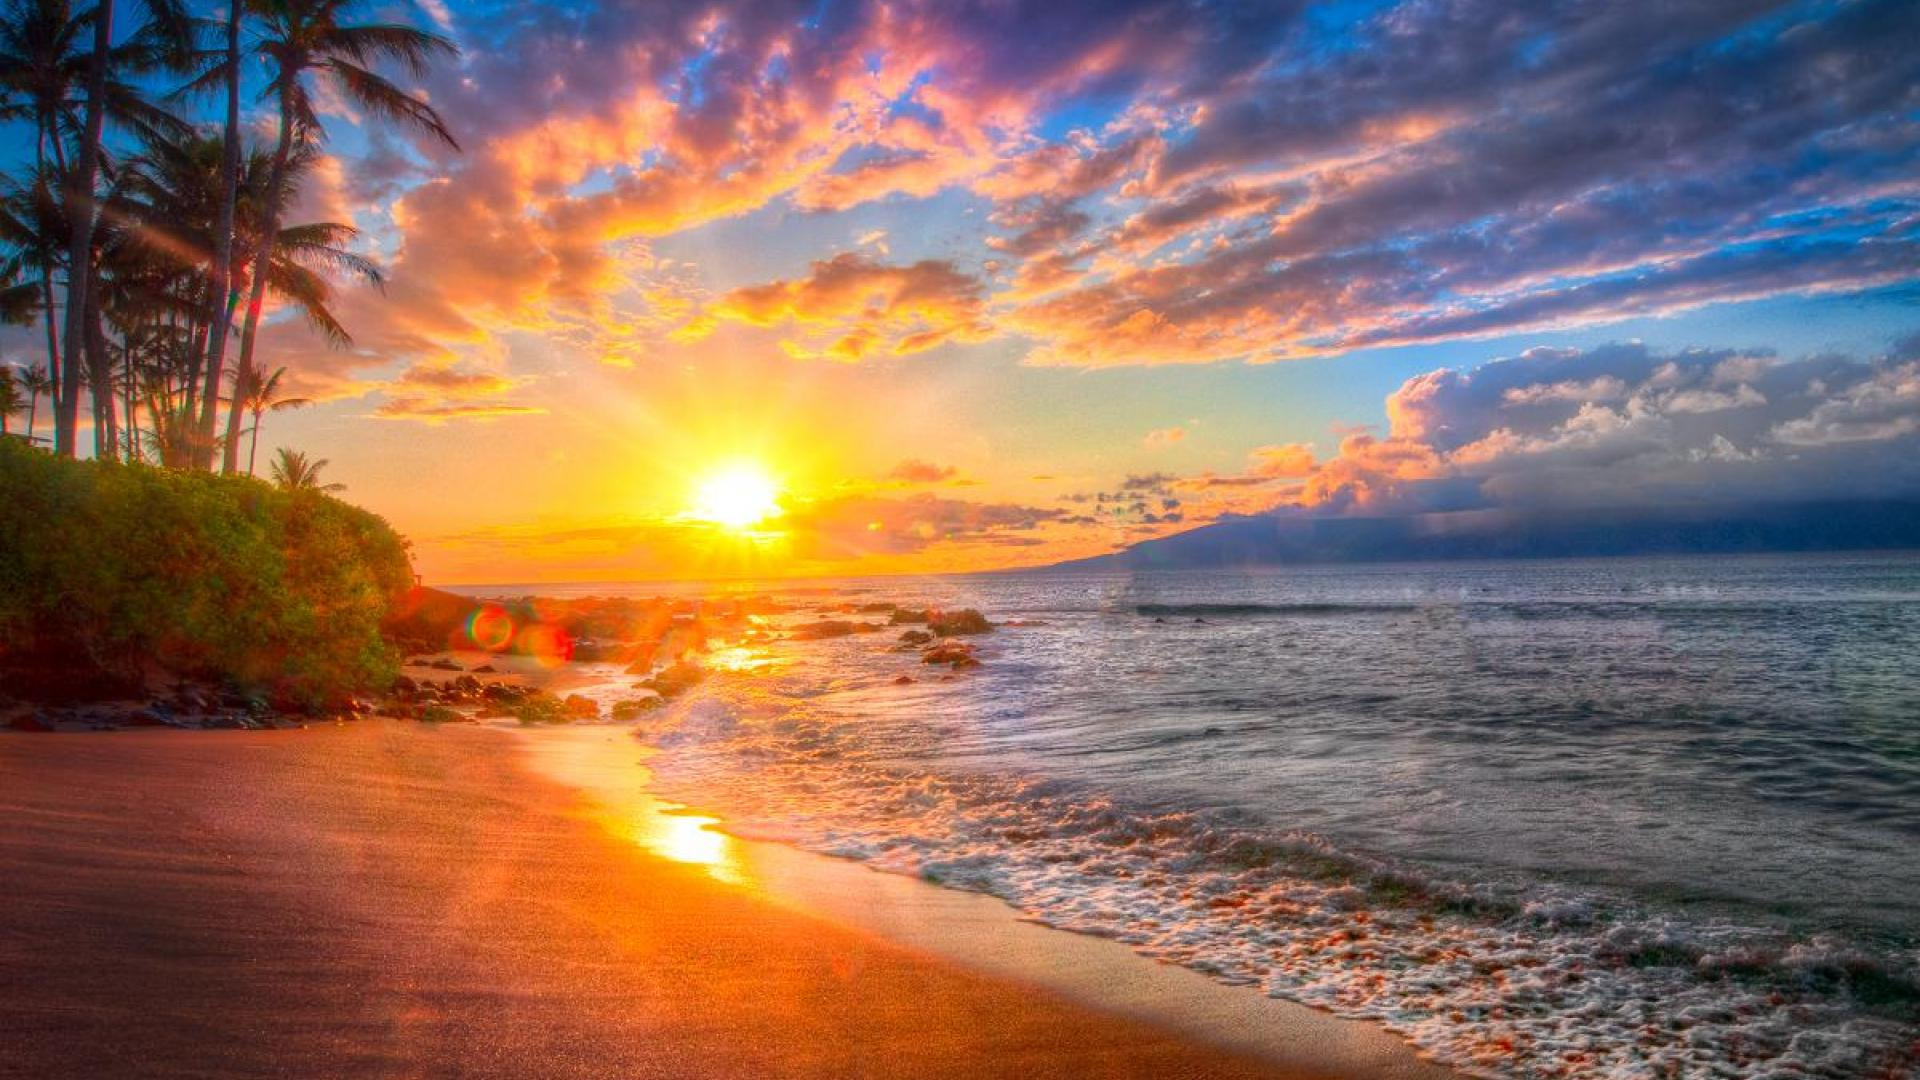 Most Beautiful Beach Sunset 1920x1080 Download Hd Wallpaper Wallpapertip,Black And White Wallpaper Aesthetic Collage